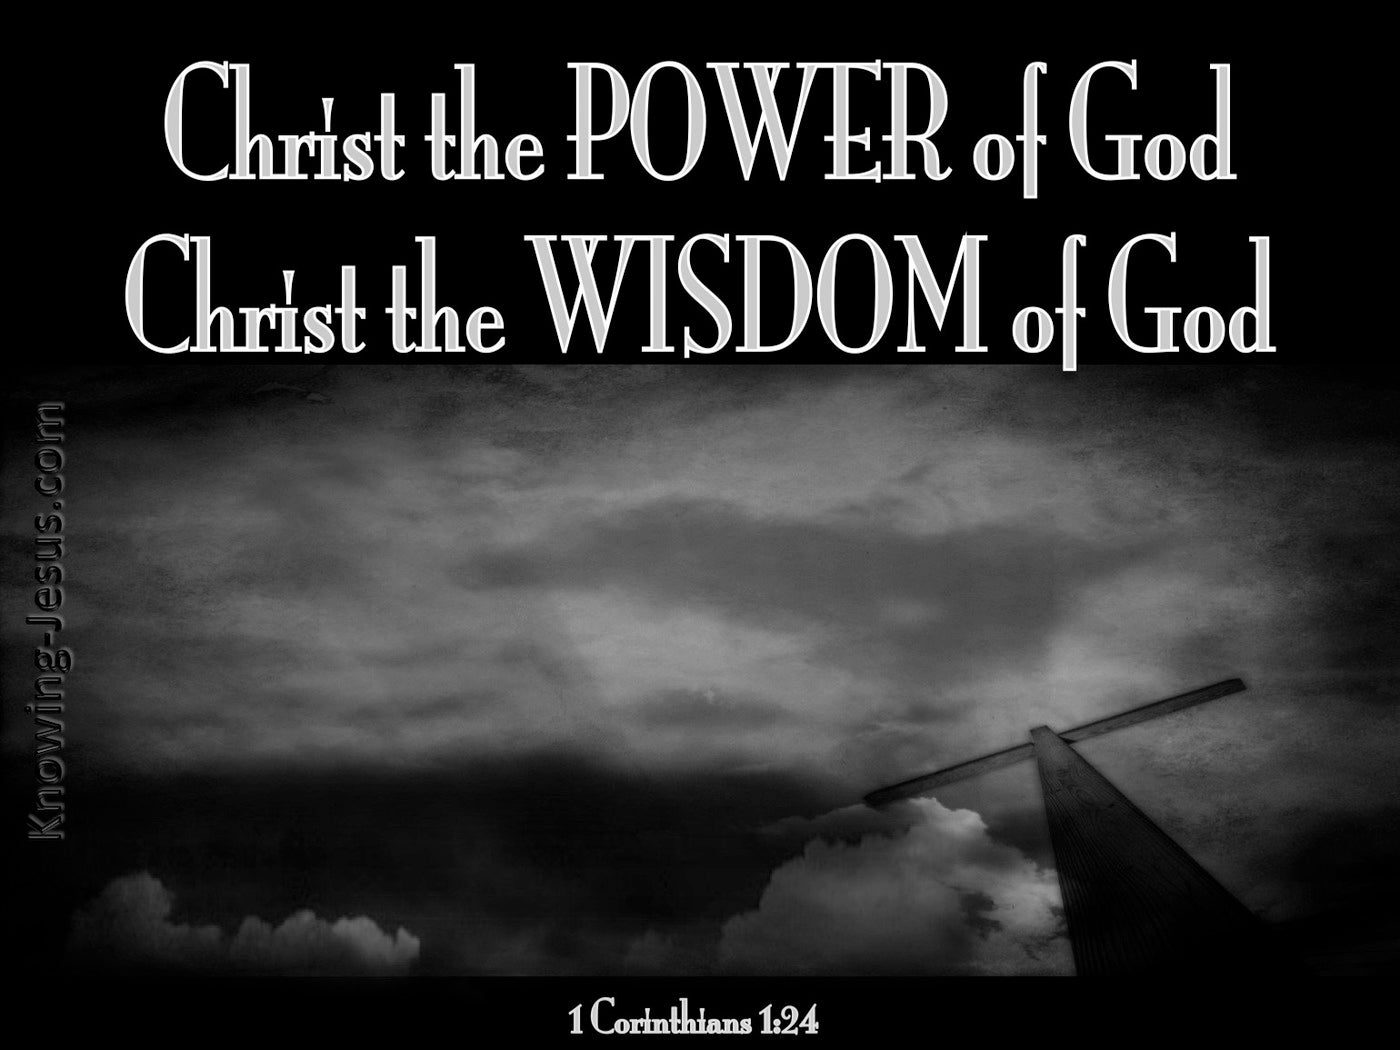 1 Corinthians 1:24 Christ The Power of God And Wisdom Of God (black)